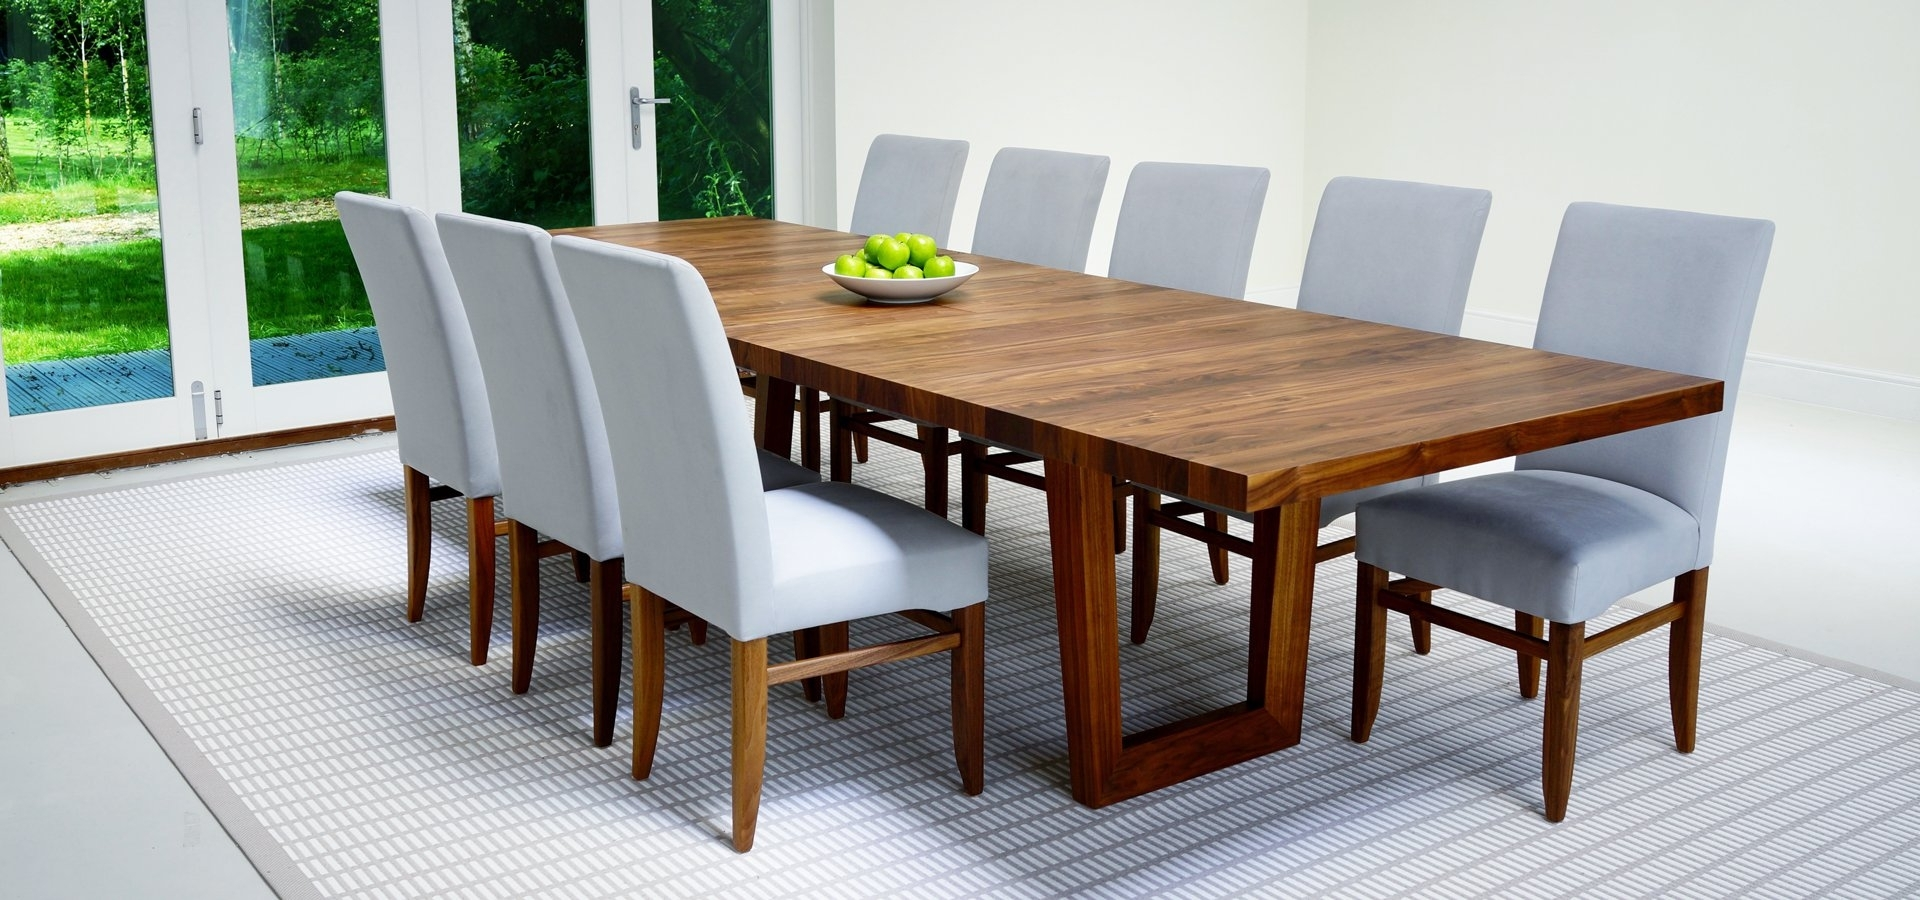 Contemporary Dining Tables & Furnitureberrydesign (View 17 of 25)